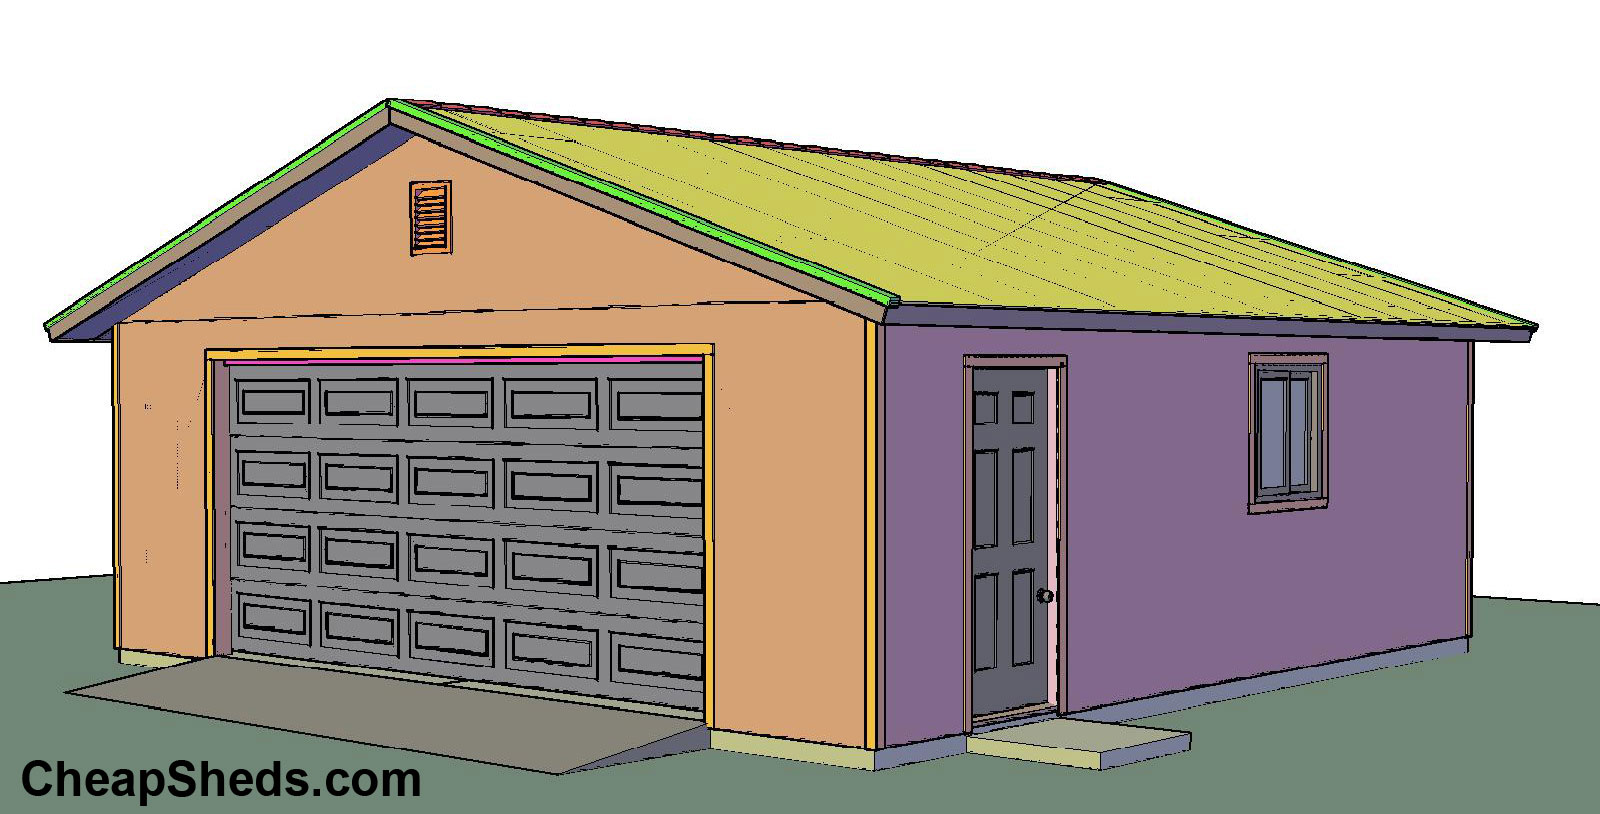 How to build and frame a 1 2 3 4 car garage plans for 24x24 garage plans